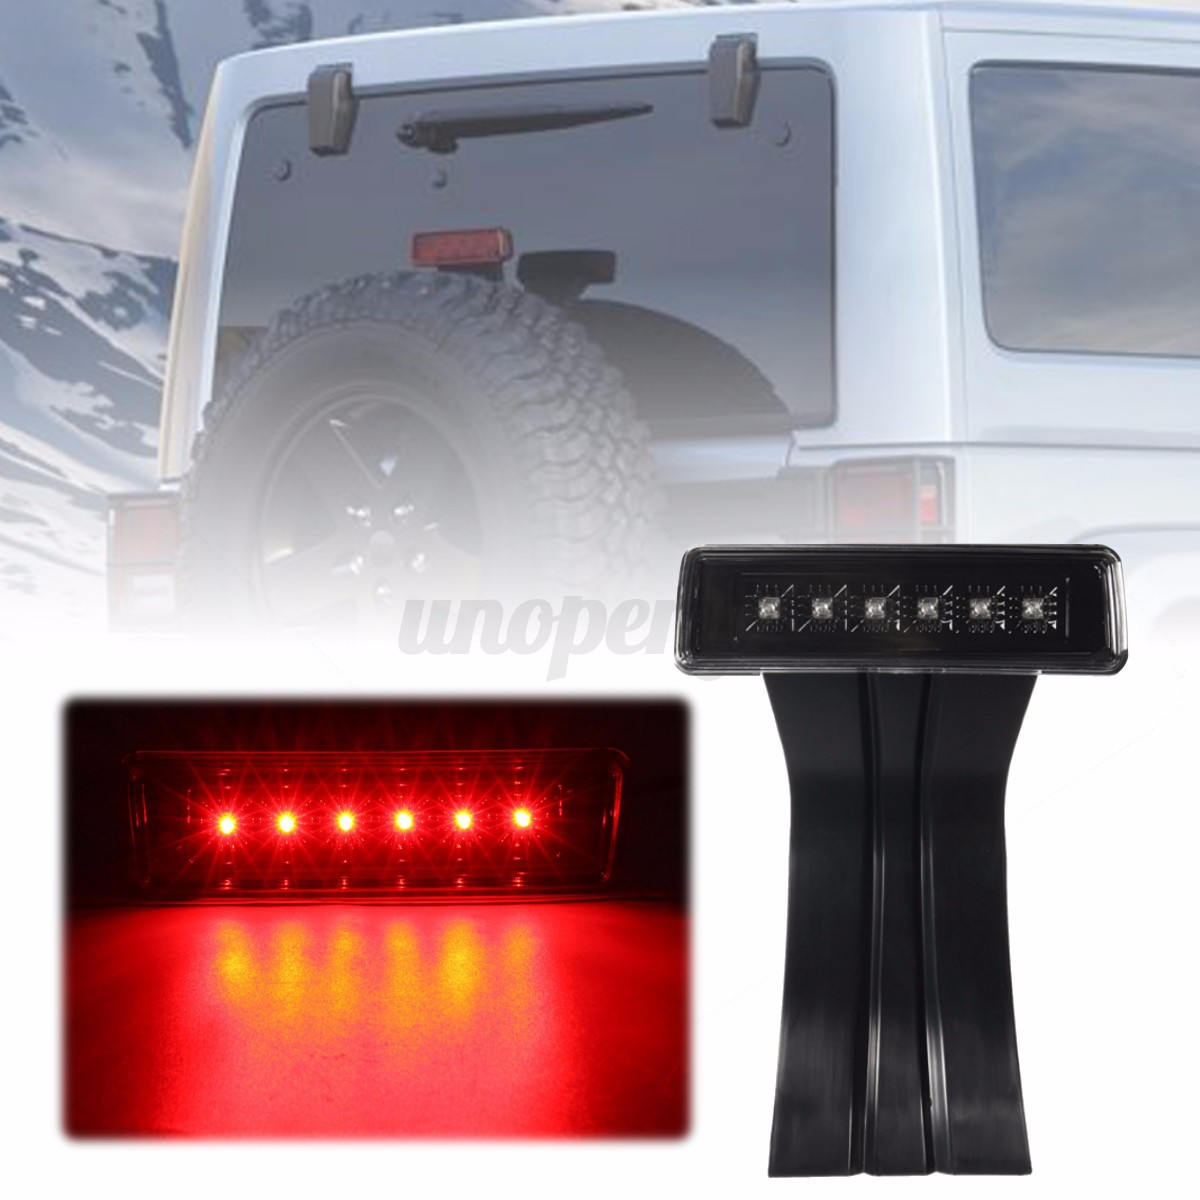 Jeep Wrangler Third Tail Light Wiring Diagrams 1994 Harness Led Clear Lens 3rd Rear Brake Lamp For Lights 95 Diagram